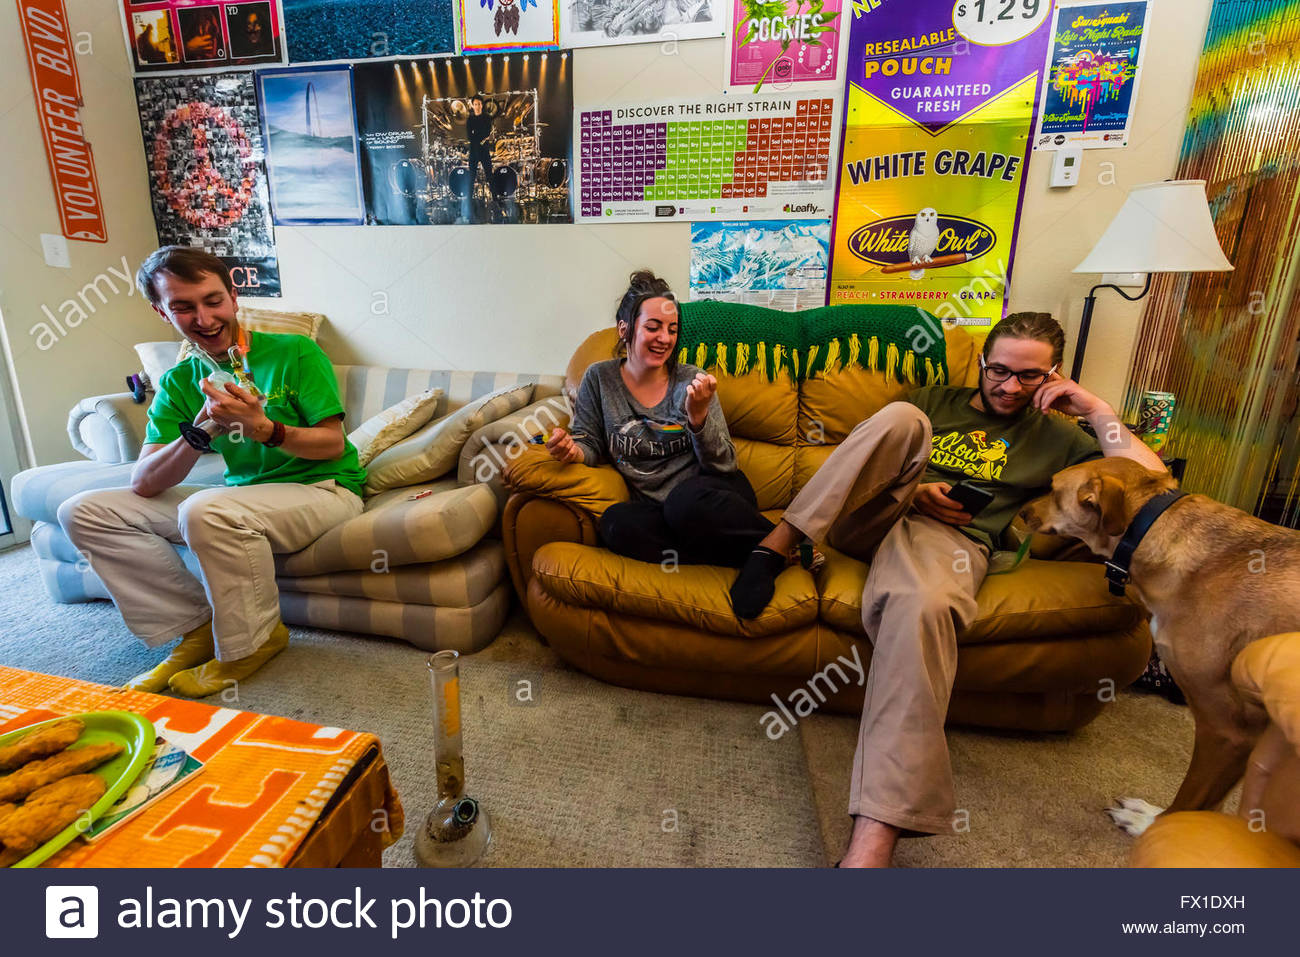 People Relaxing At Home